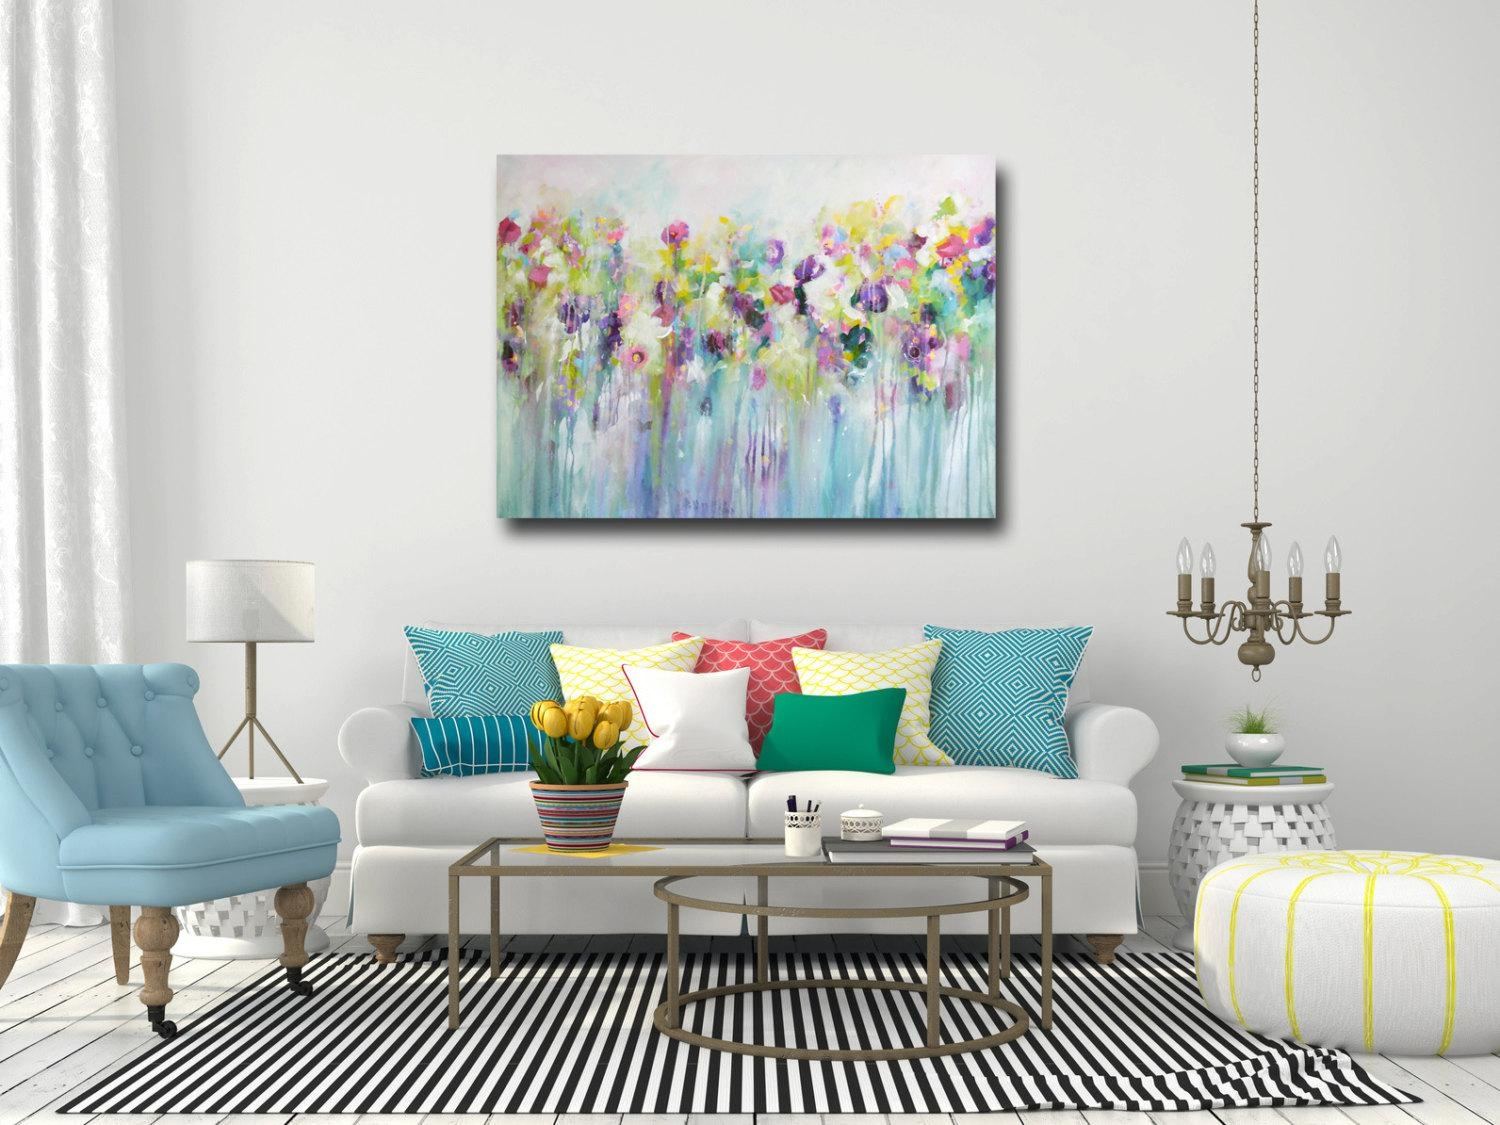 Large Wall Art Canvas Art Abstract Floral Canvas Print Pertaining To Big Canvas Wall Art (View 18 of 21)